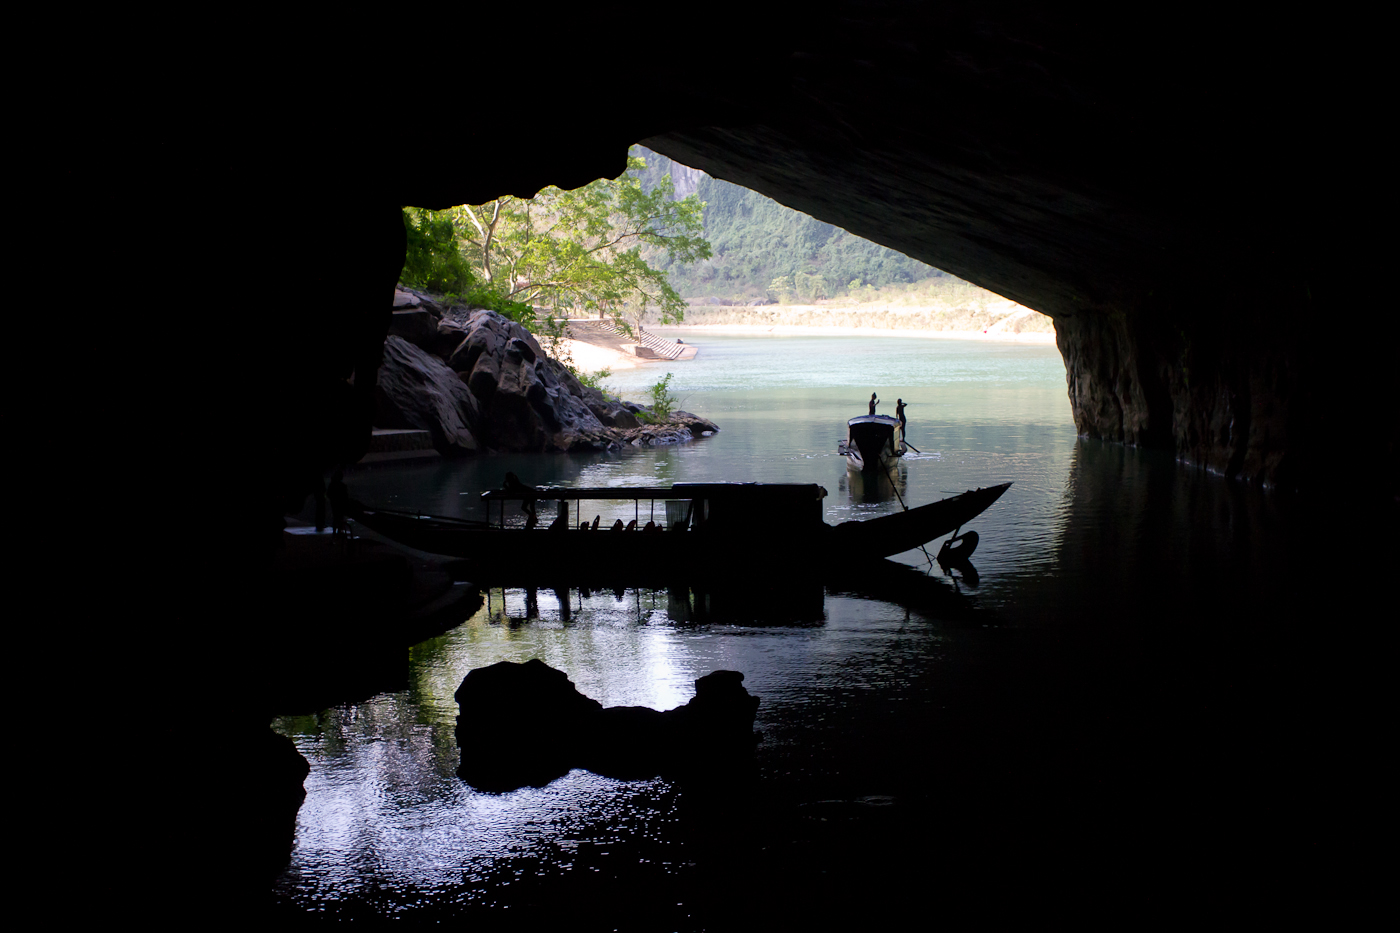 The entrance to the underground river at Phong Nha